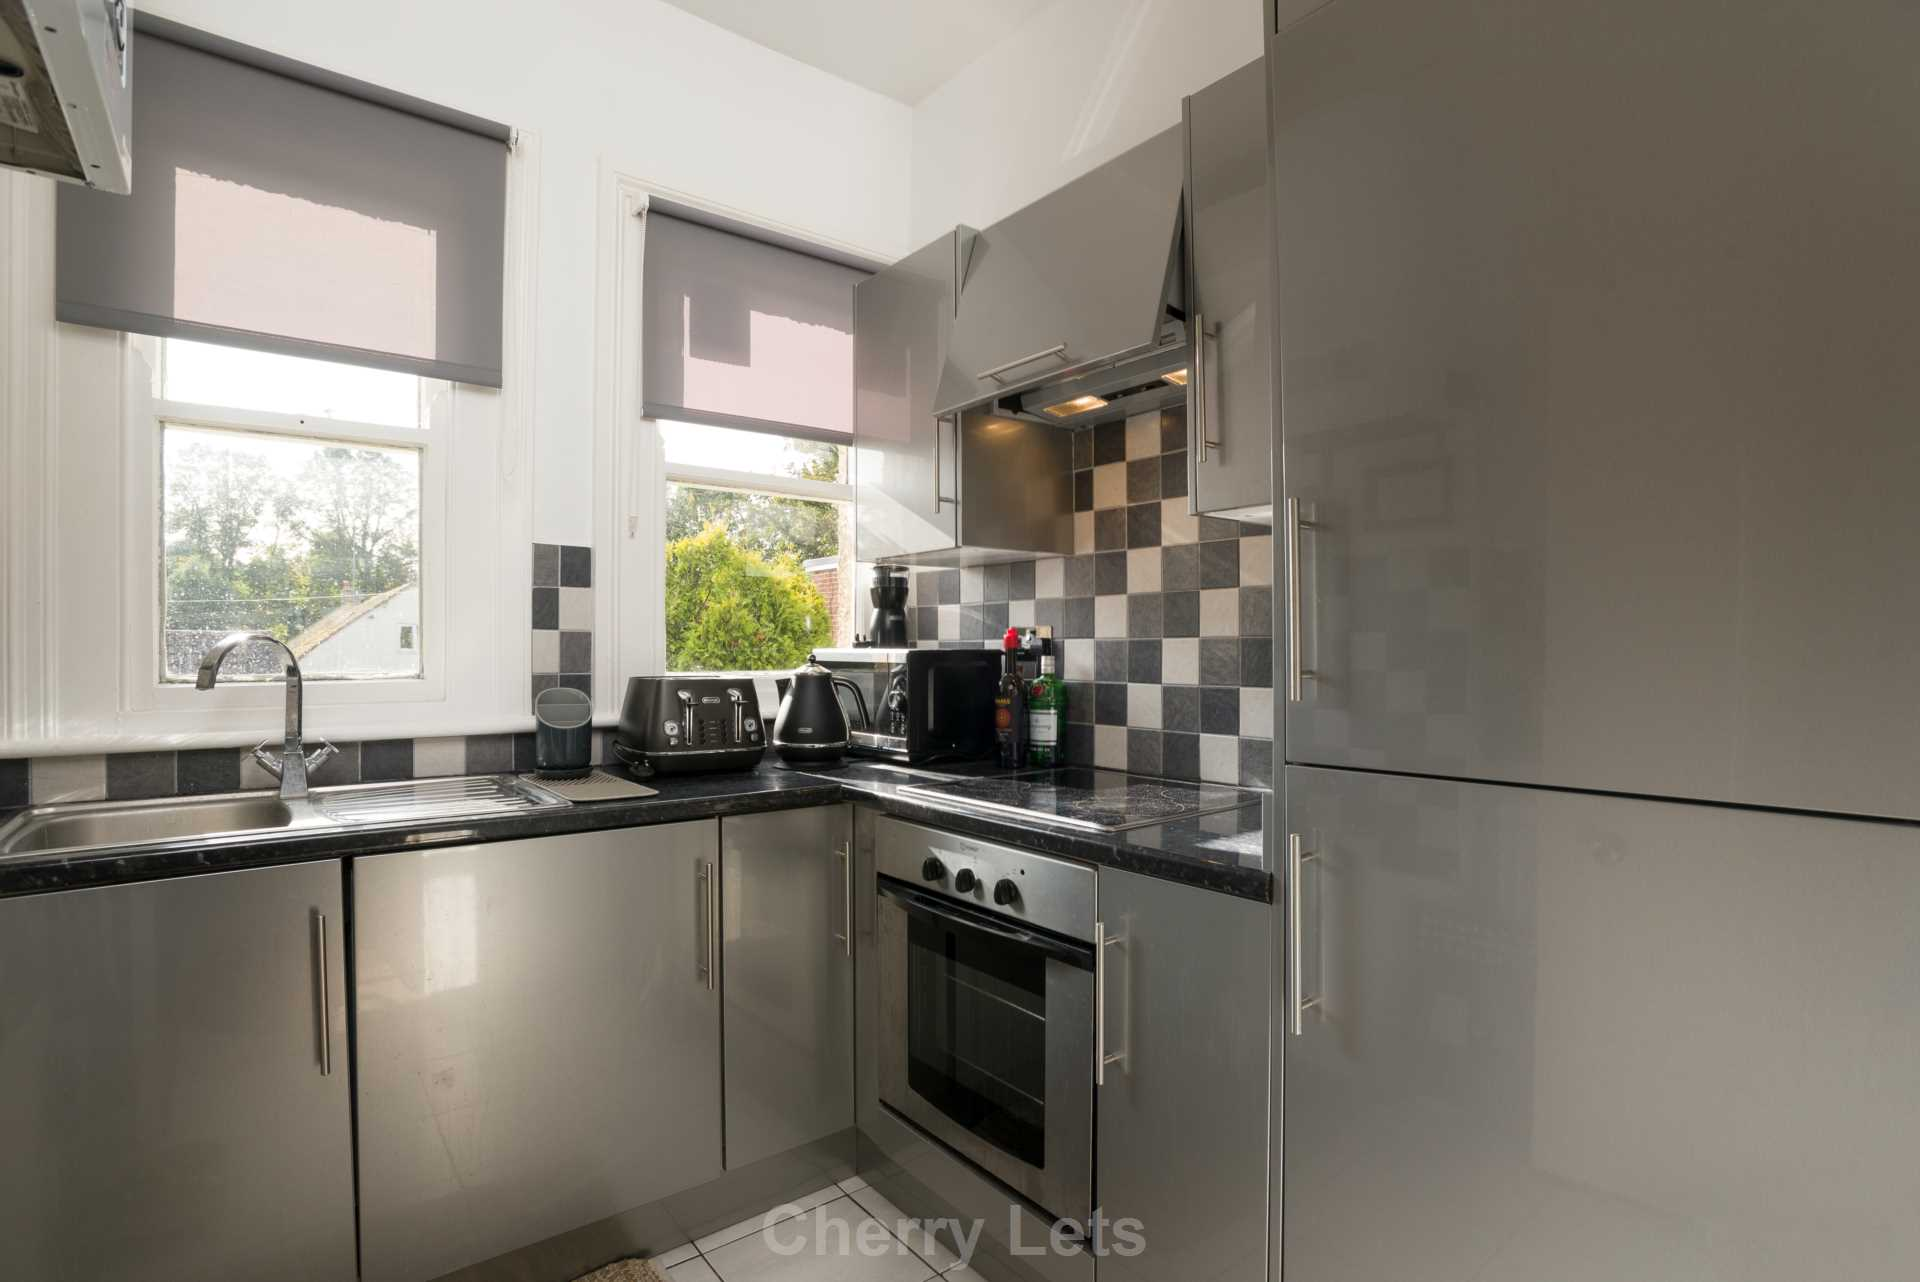 1 bed flat to rent in Bloxham Road, Banbury, OX16  - Property Image 4